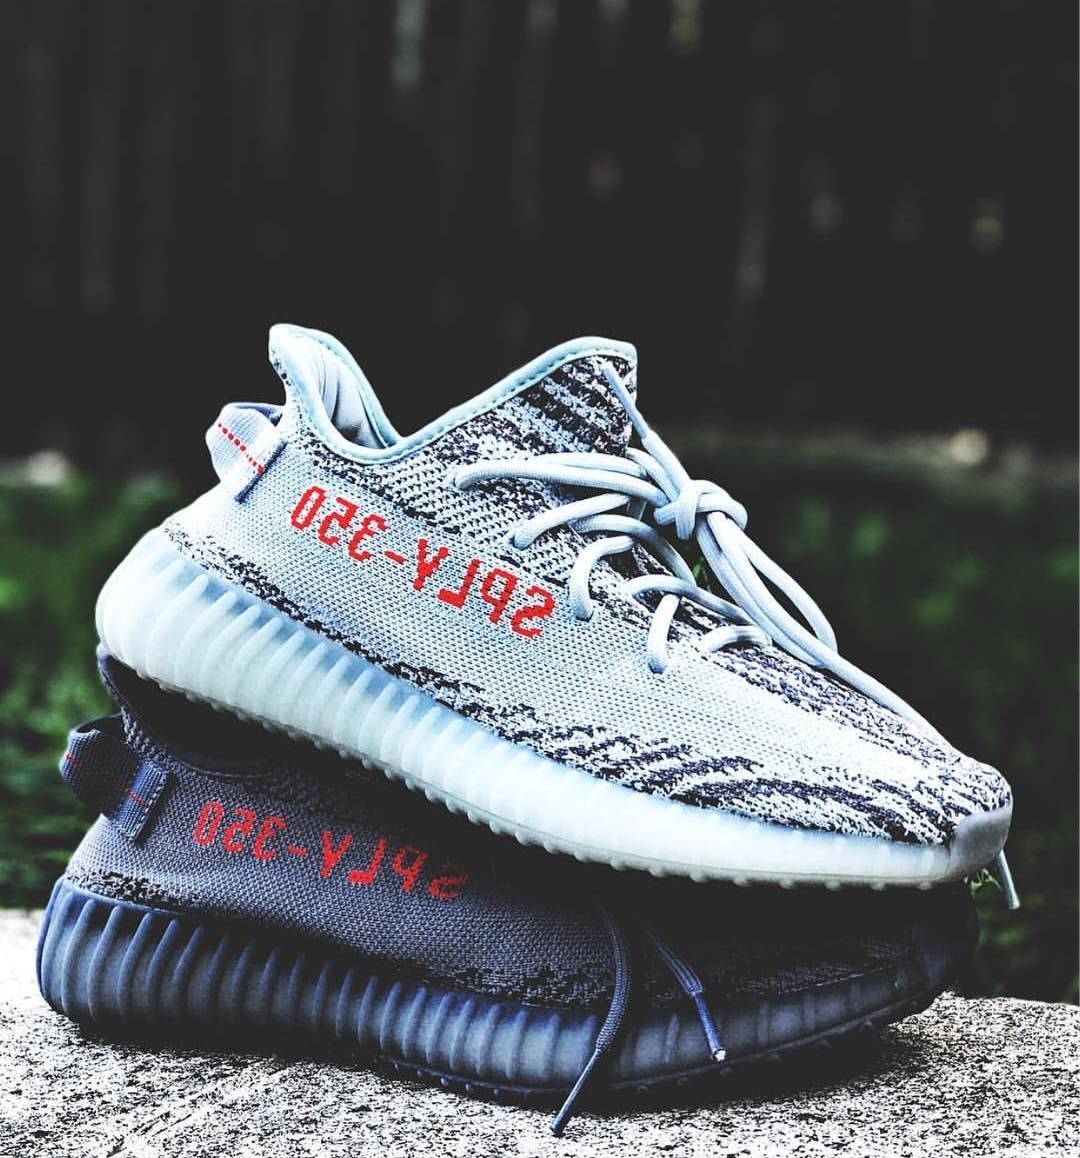 on sale b22eb 59d16 All Raffle Links For The Blue Tint Yeezy Boost 350 V2 ...